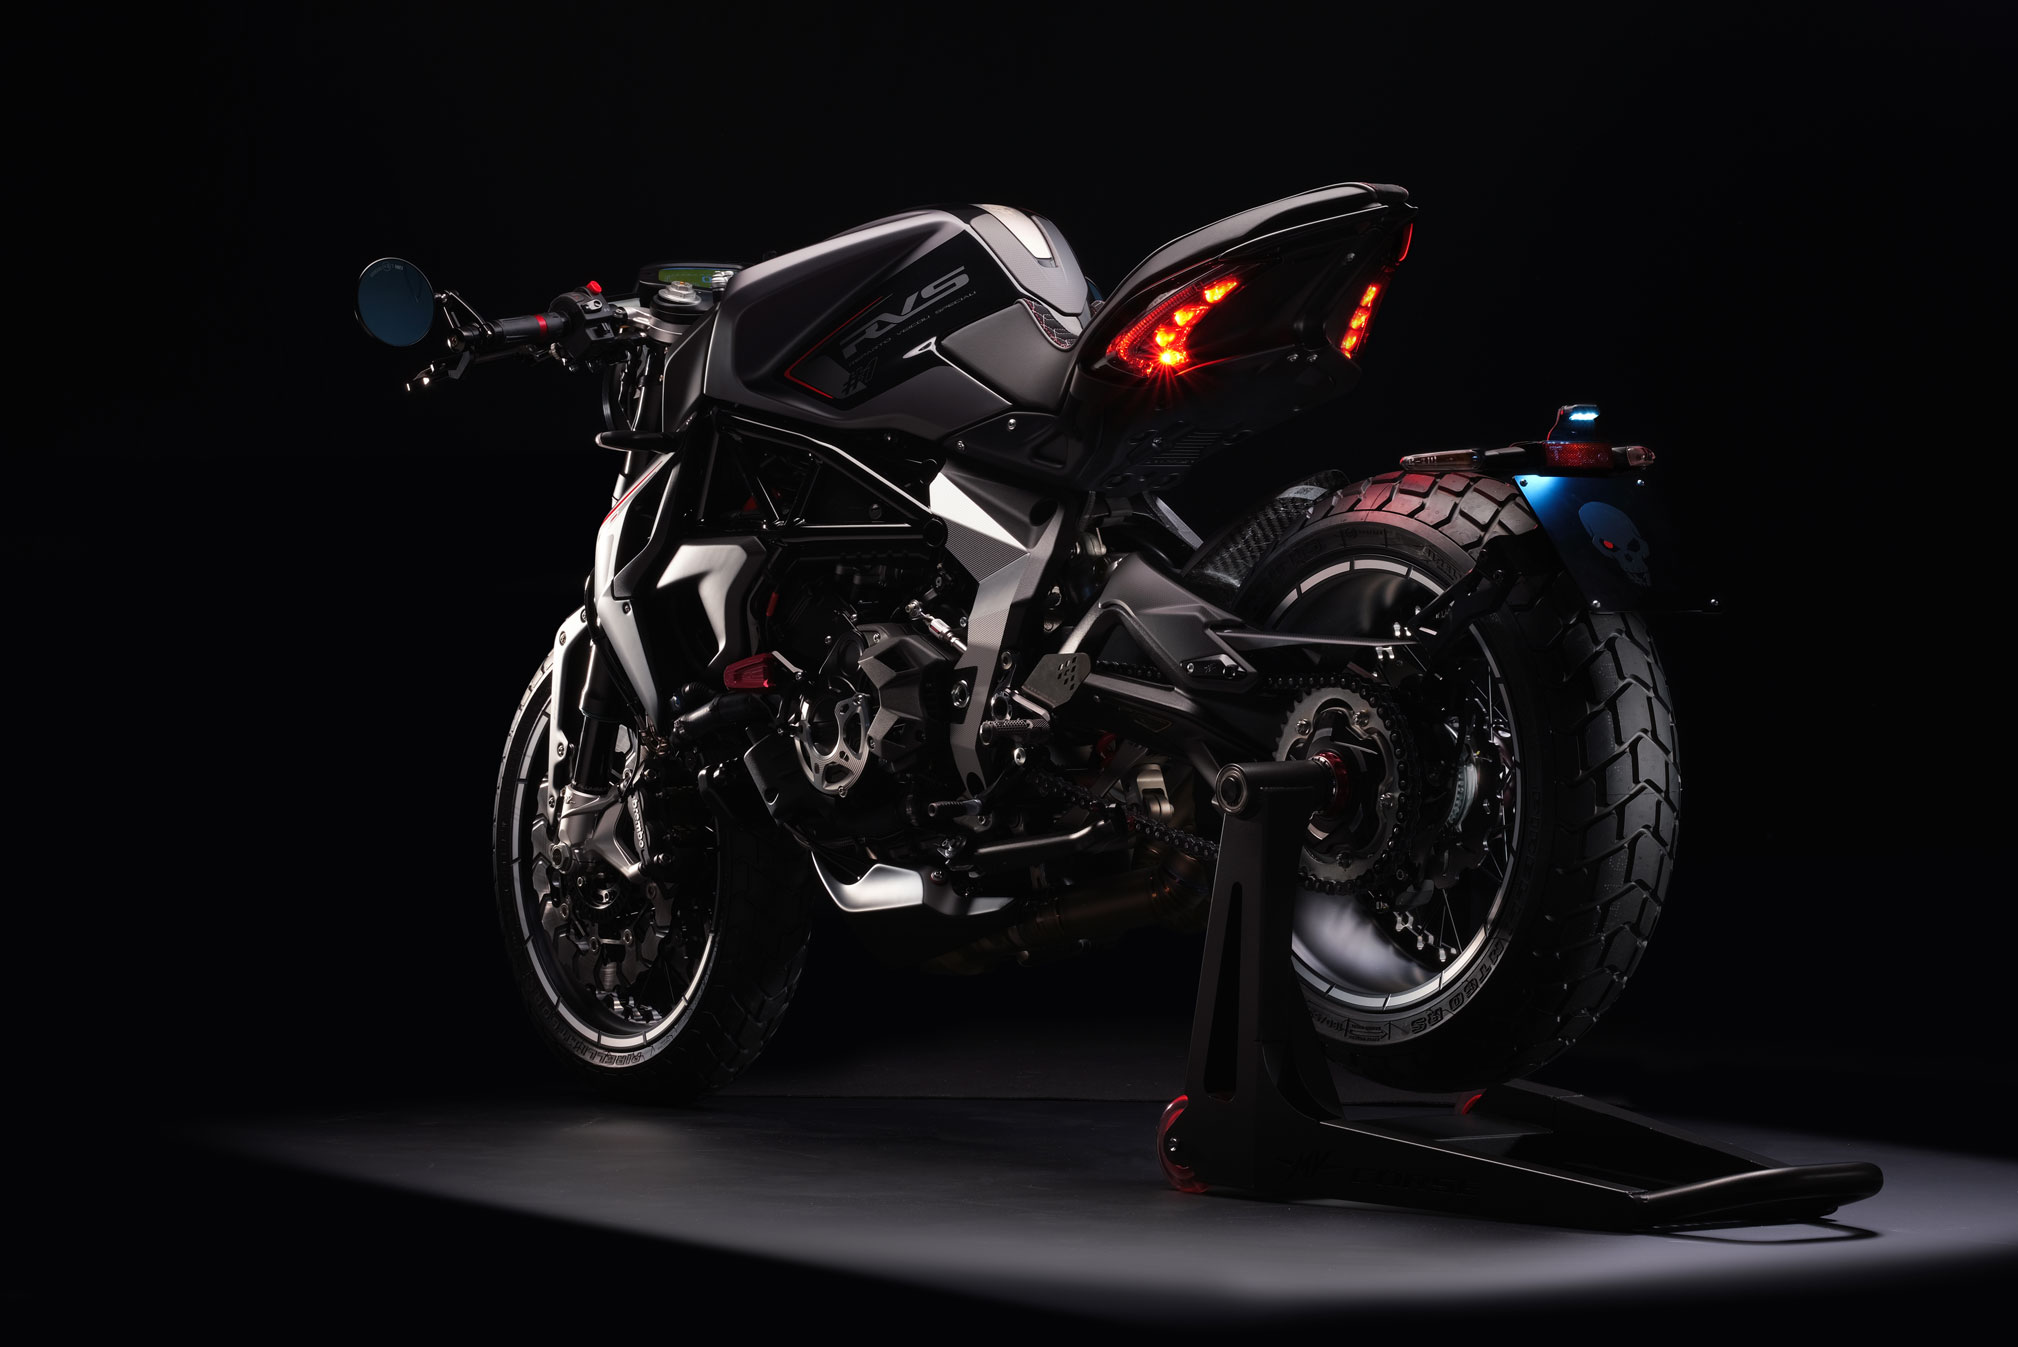 2018 mv agusta rvs 1 review totalmotorcycle. Black Bedroom Furniture Sets. Home Design Ideas